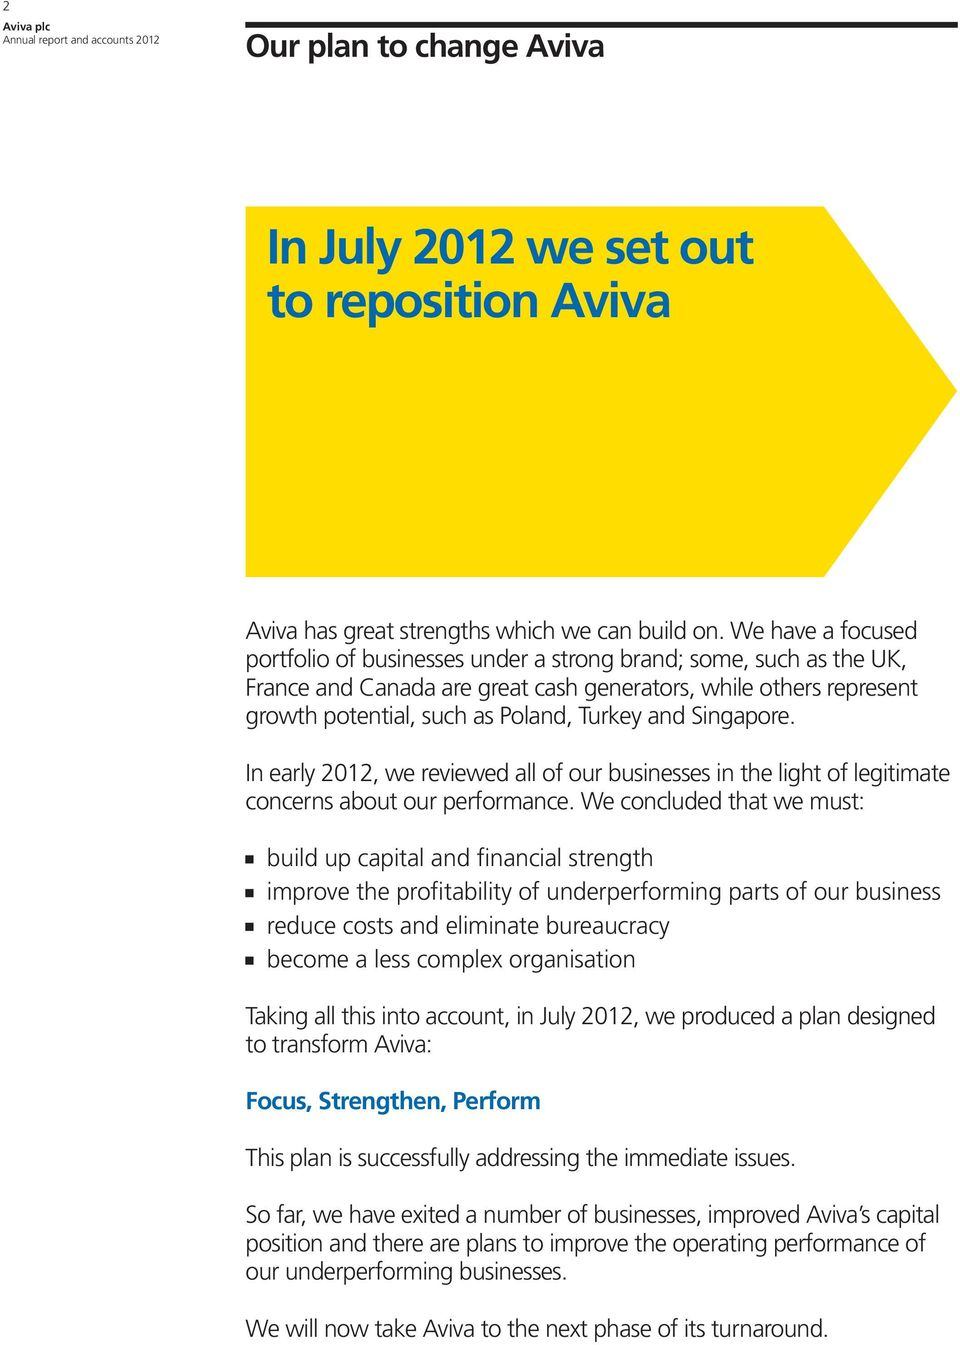 Singapore. In early 2012, we reviewed all of our businesses in the light of legitimate concerns about our performance.